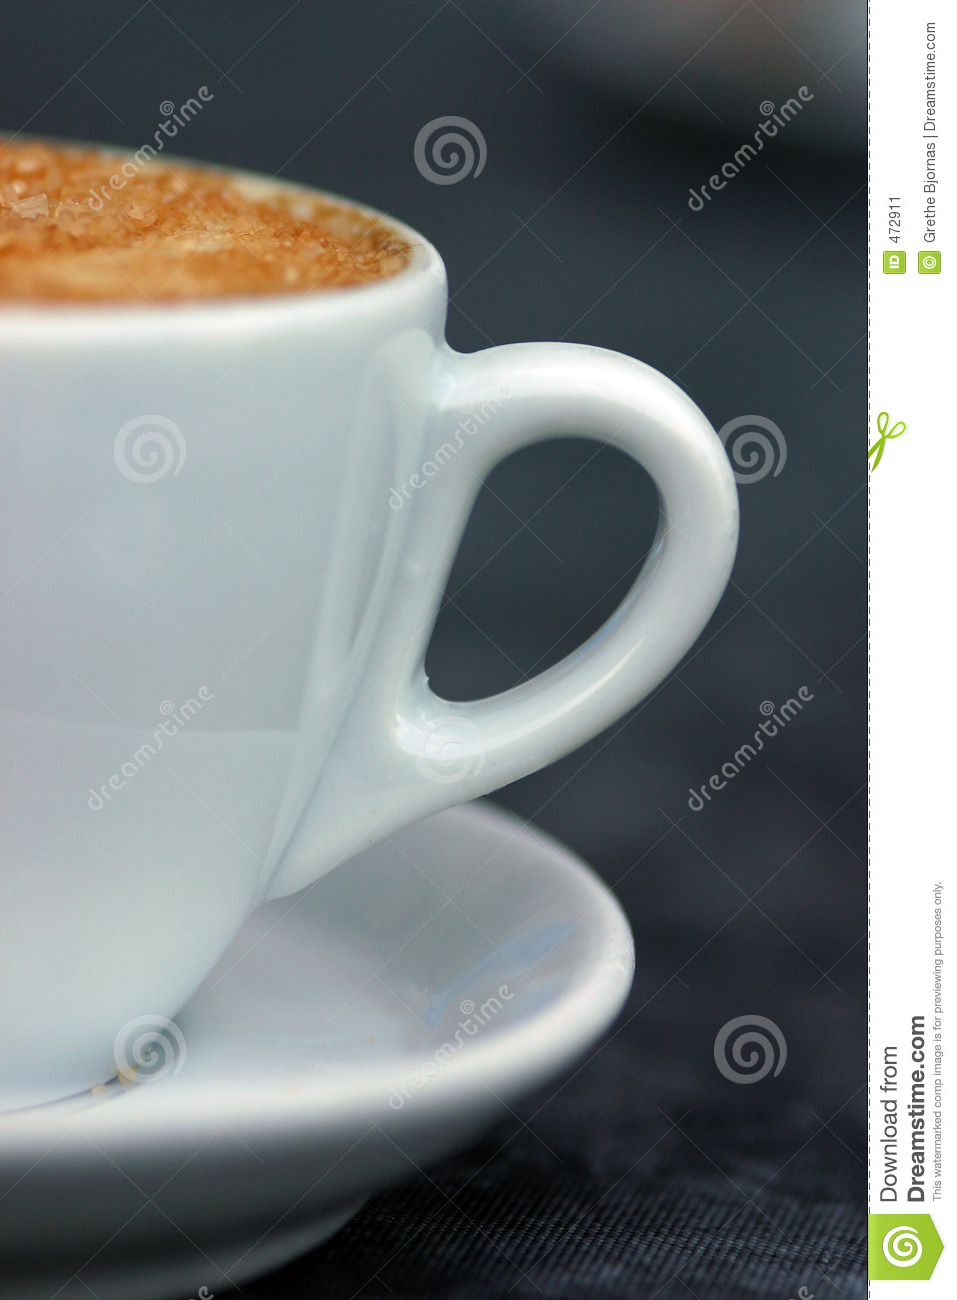 Download Half a cup of cappuccino? stock image. Image of italy, brown - 472911